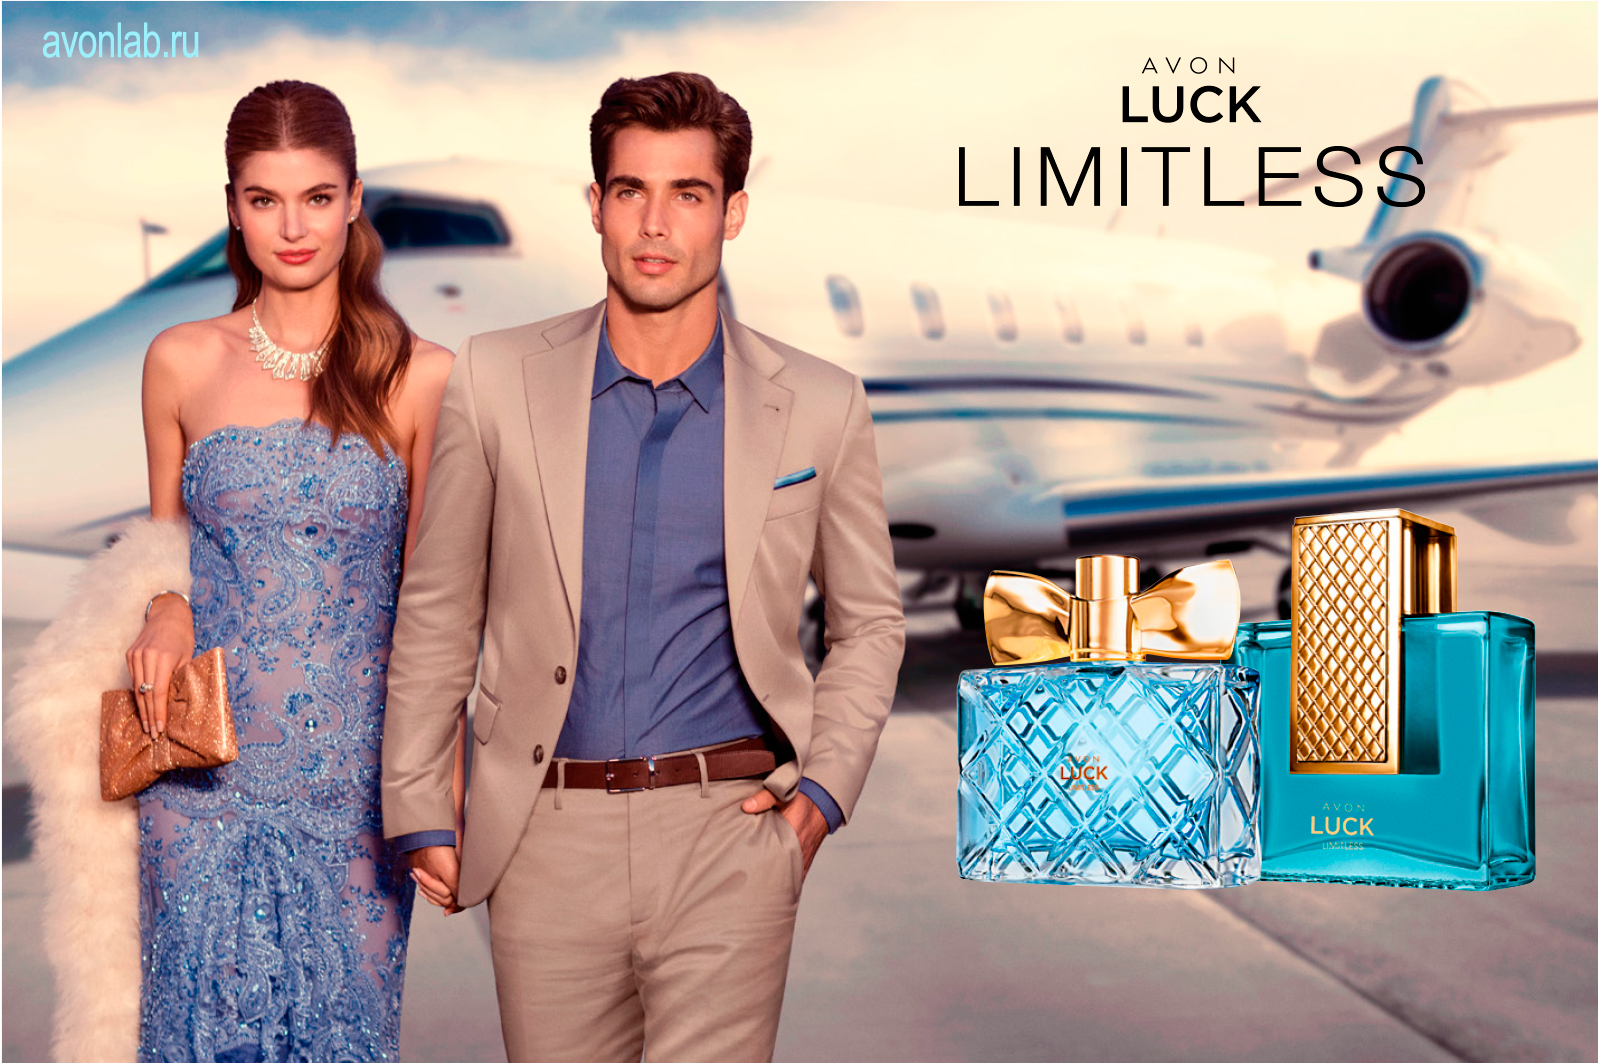 Avon Luck Limitless